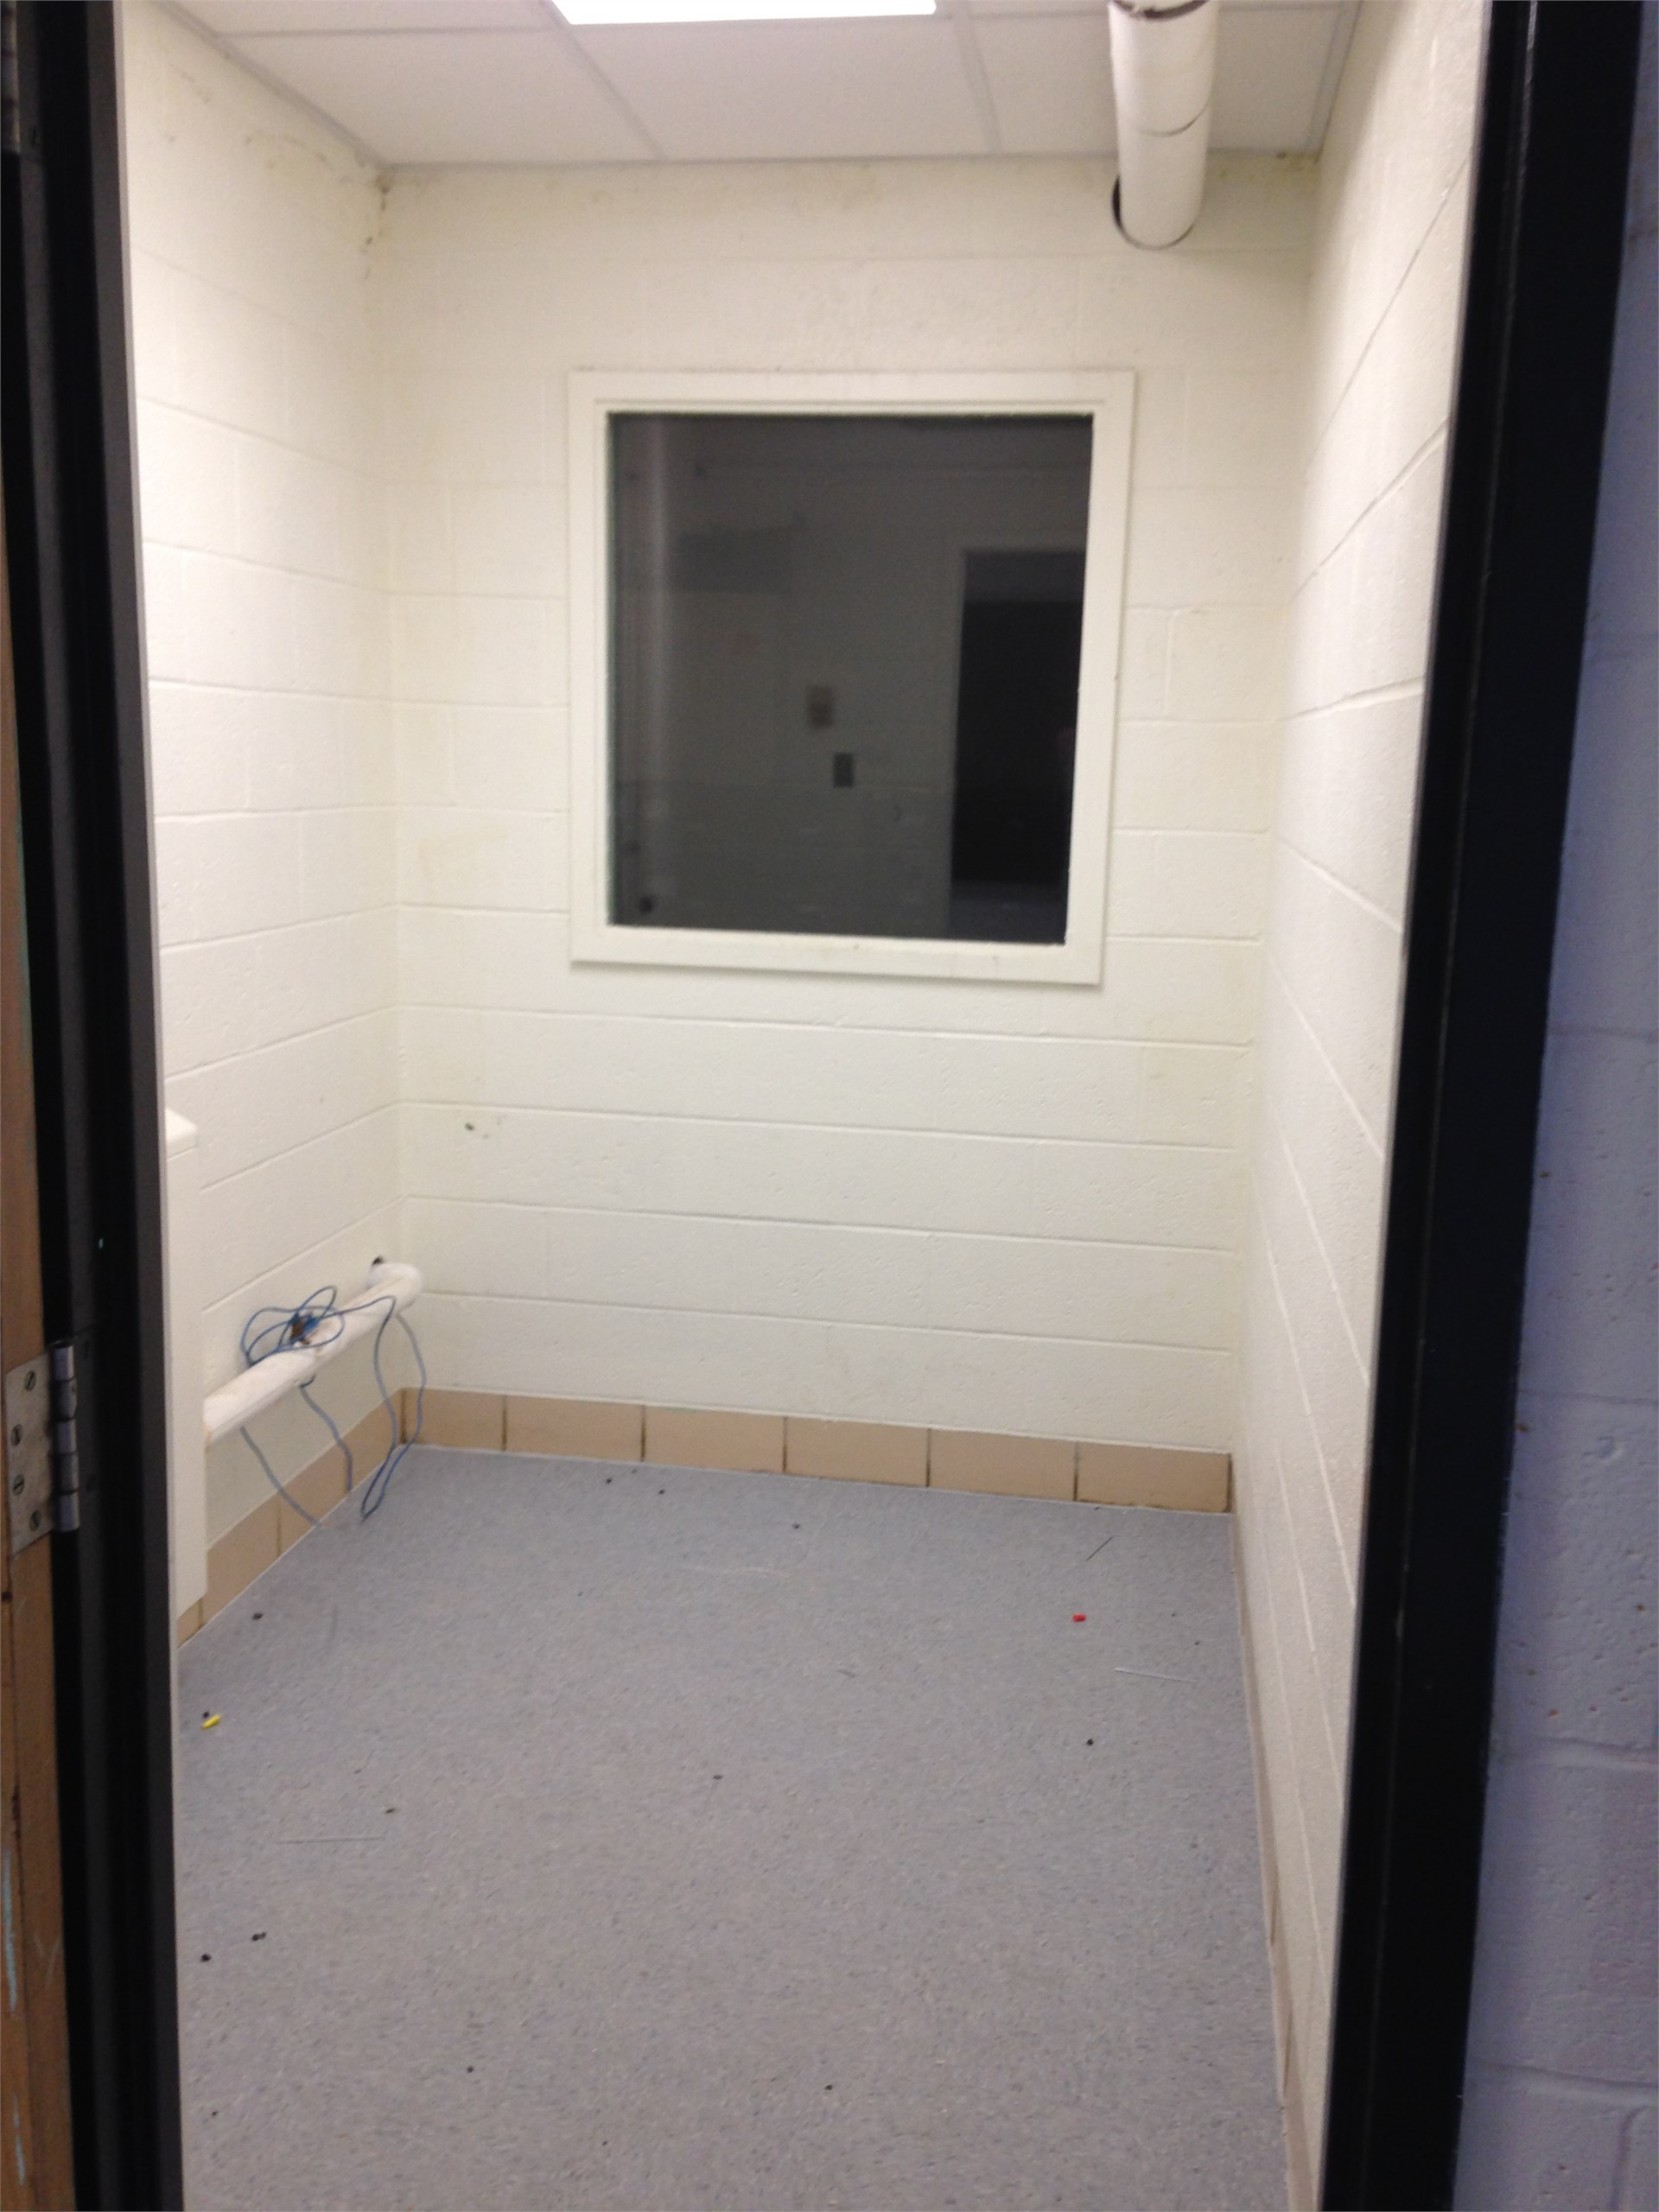 Band Practice rooms with new tile floor